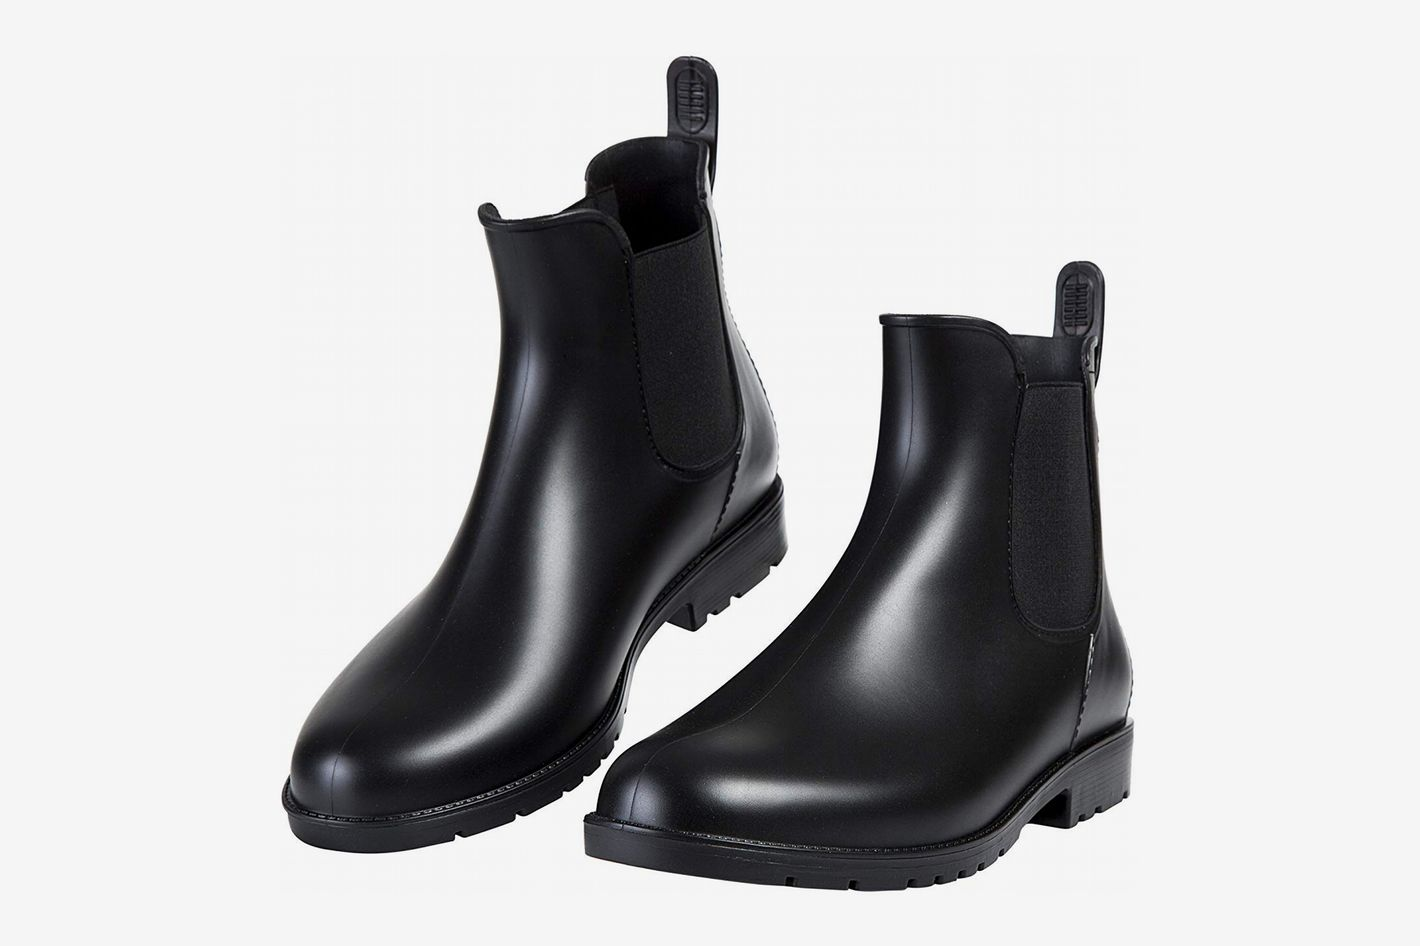 3eb7fc4be5e 11 Best Rubber Boots for Women 2019